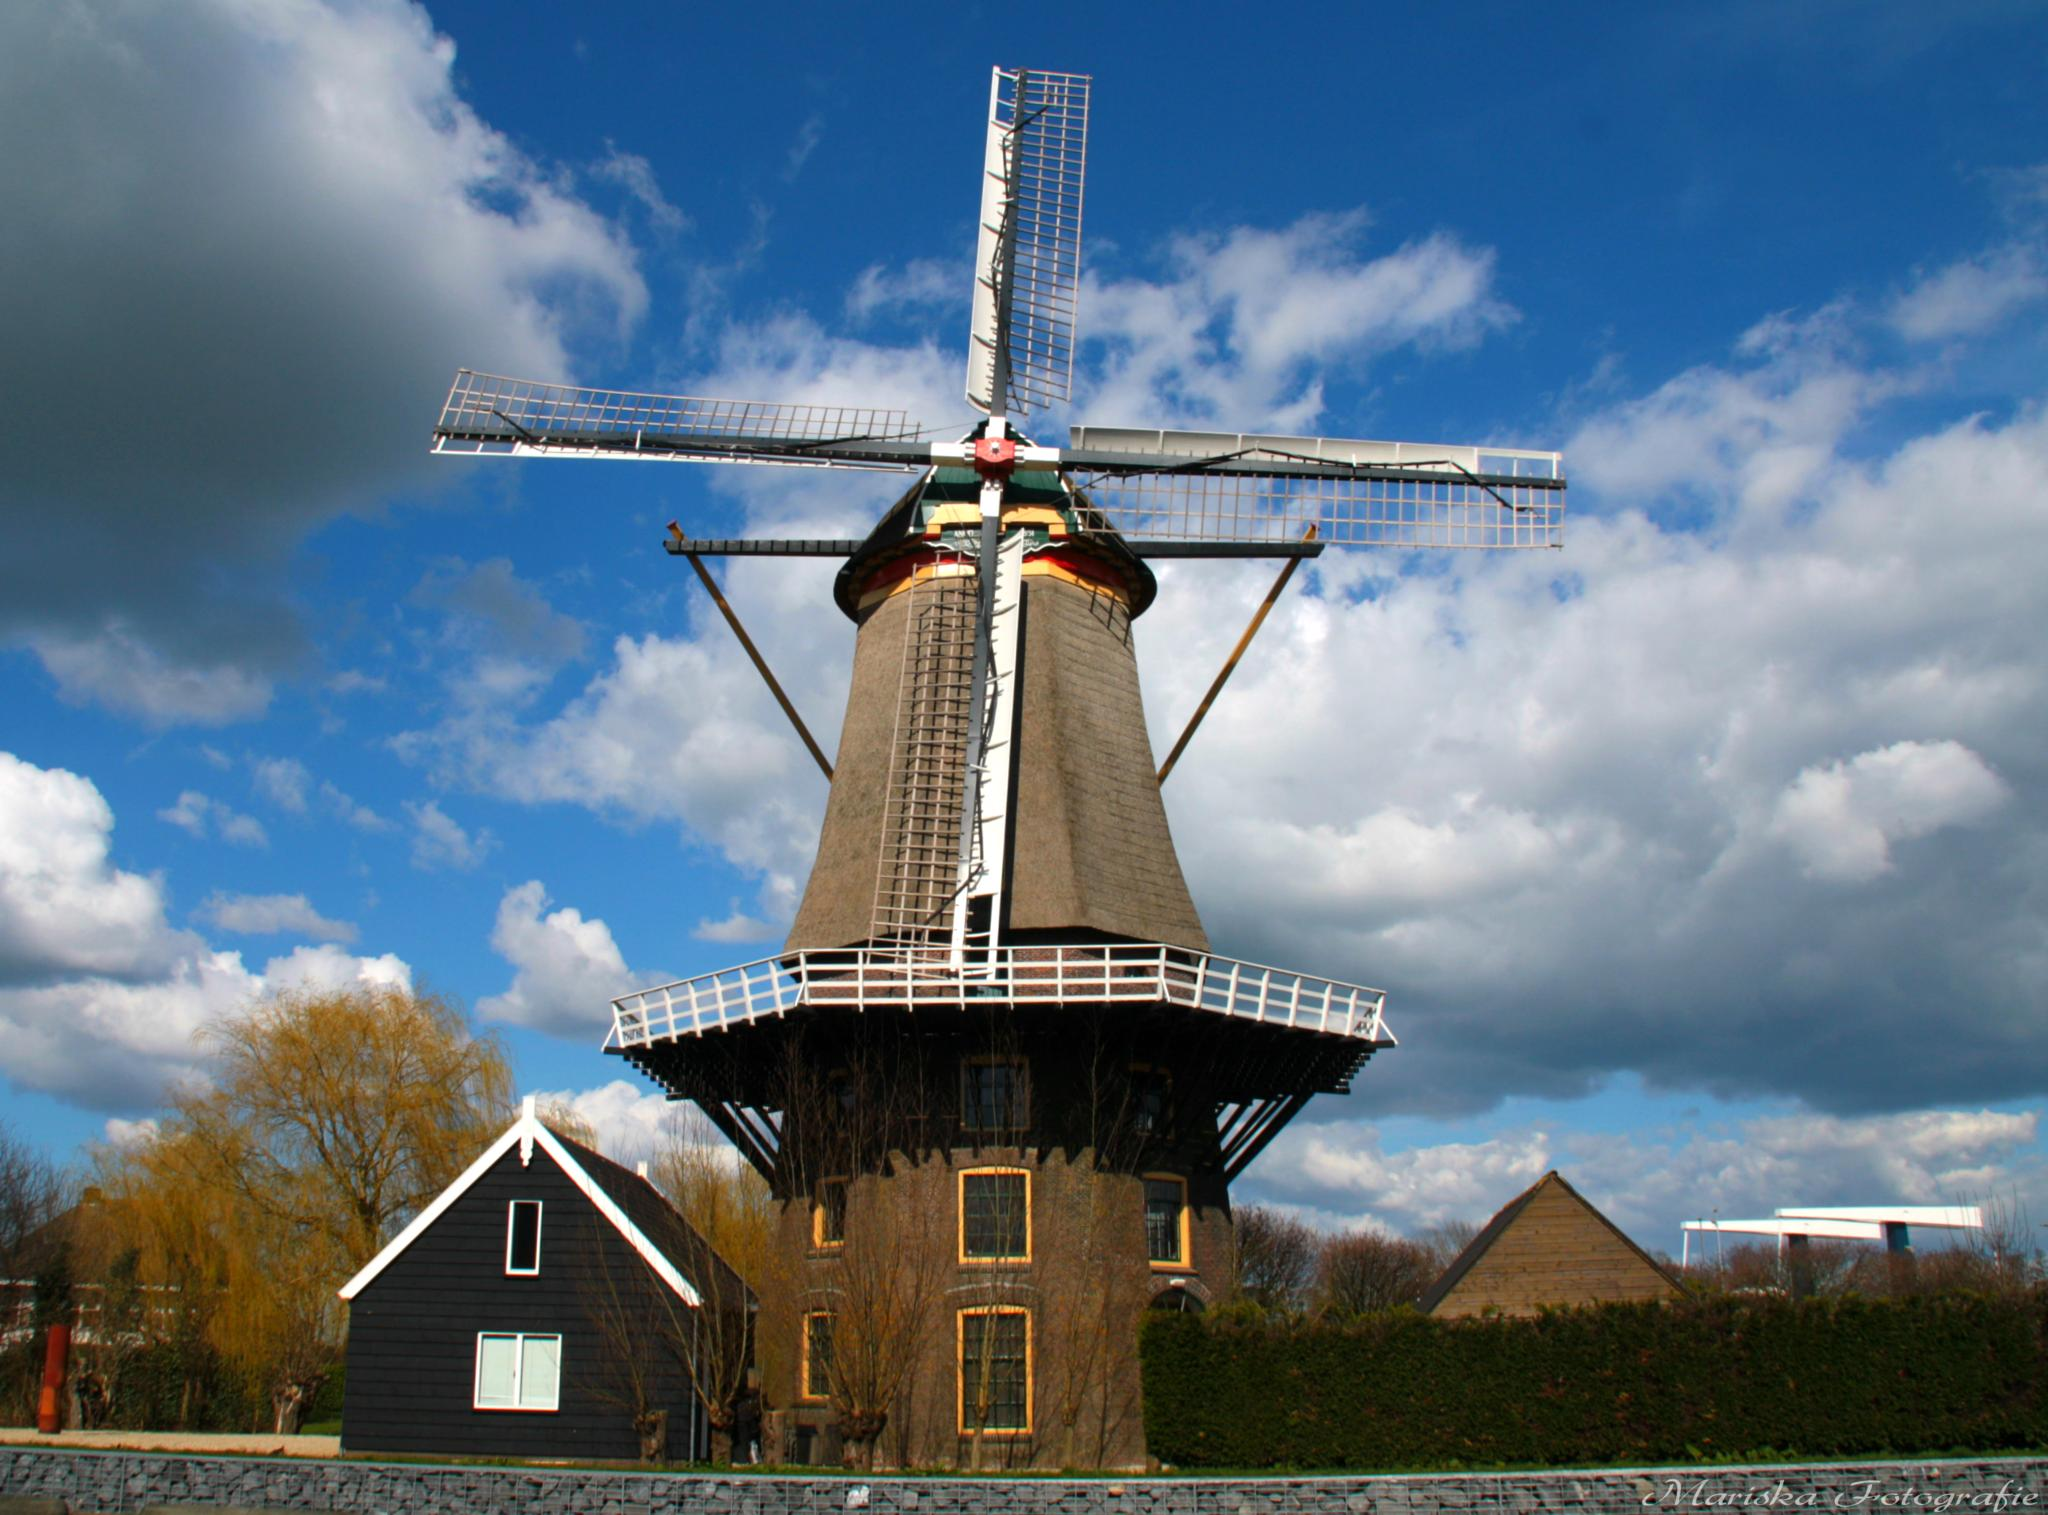 'Arkel' The Netherlands by Chaynasa